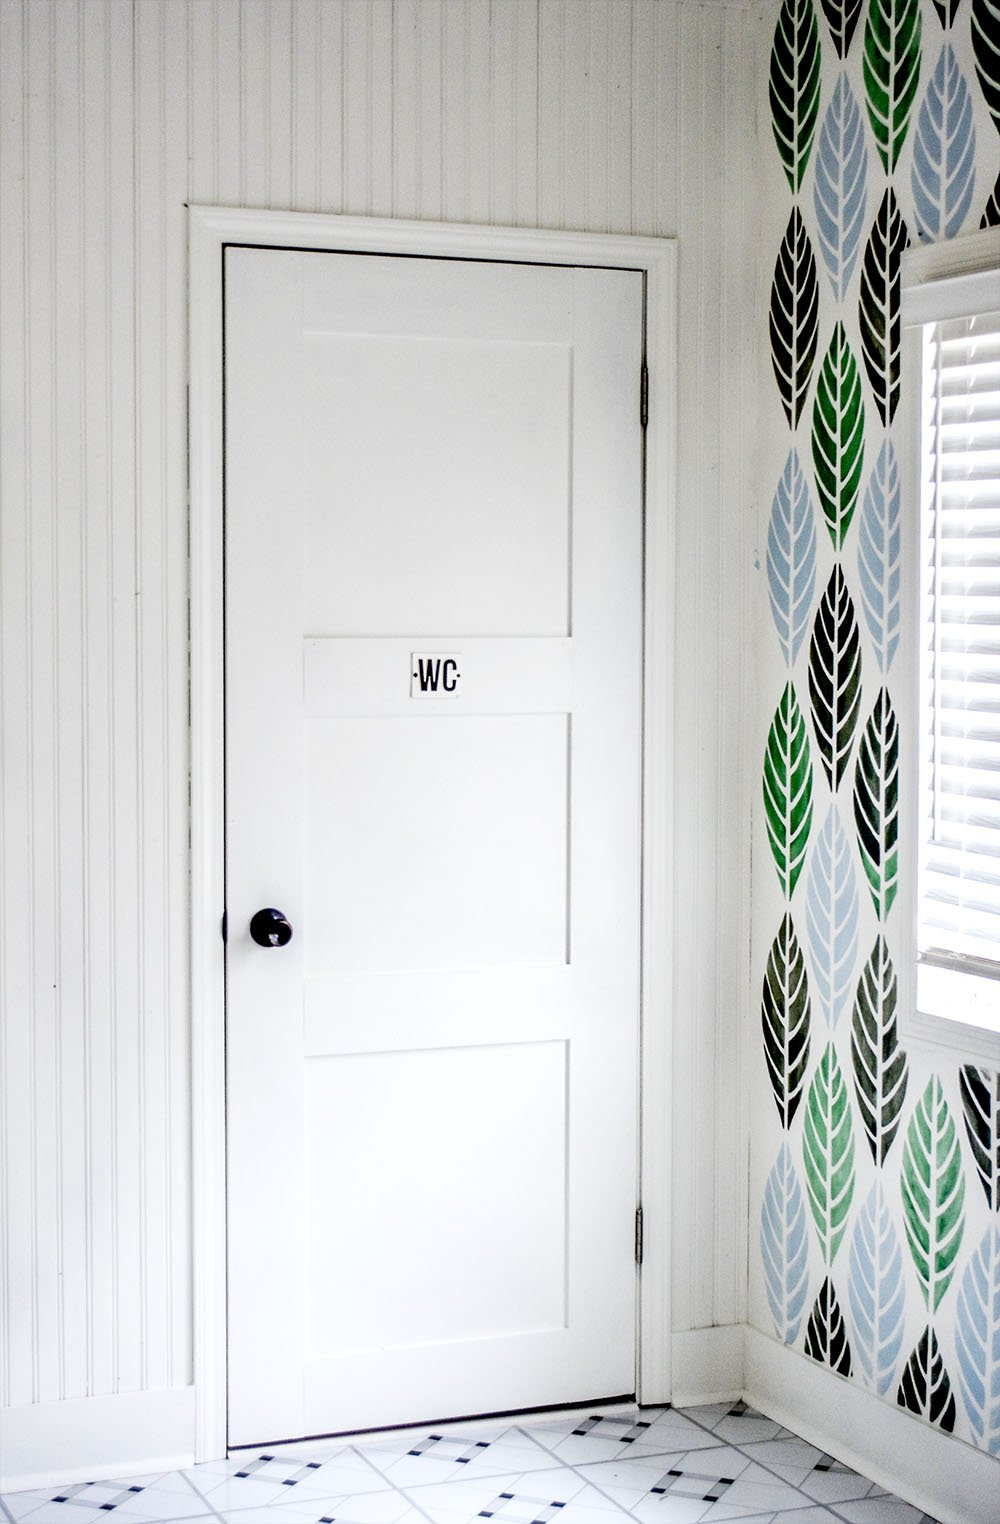 Turn a hollow door into a beautiful door with simple boards and paint.